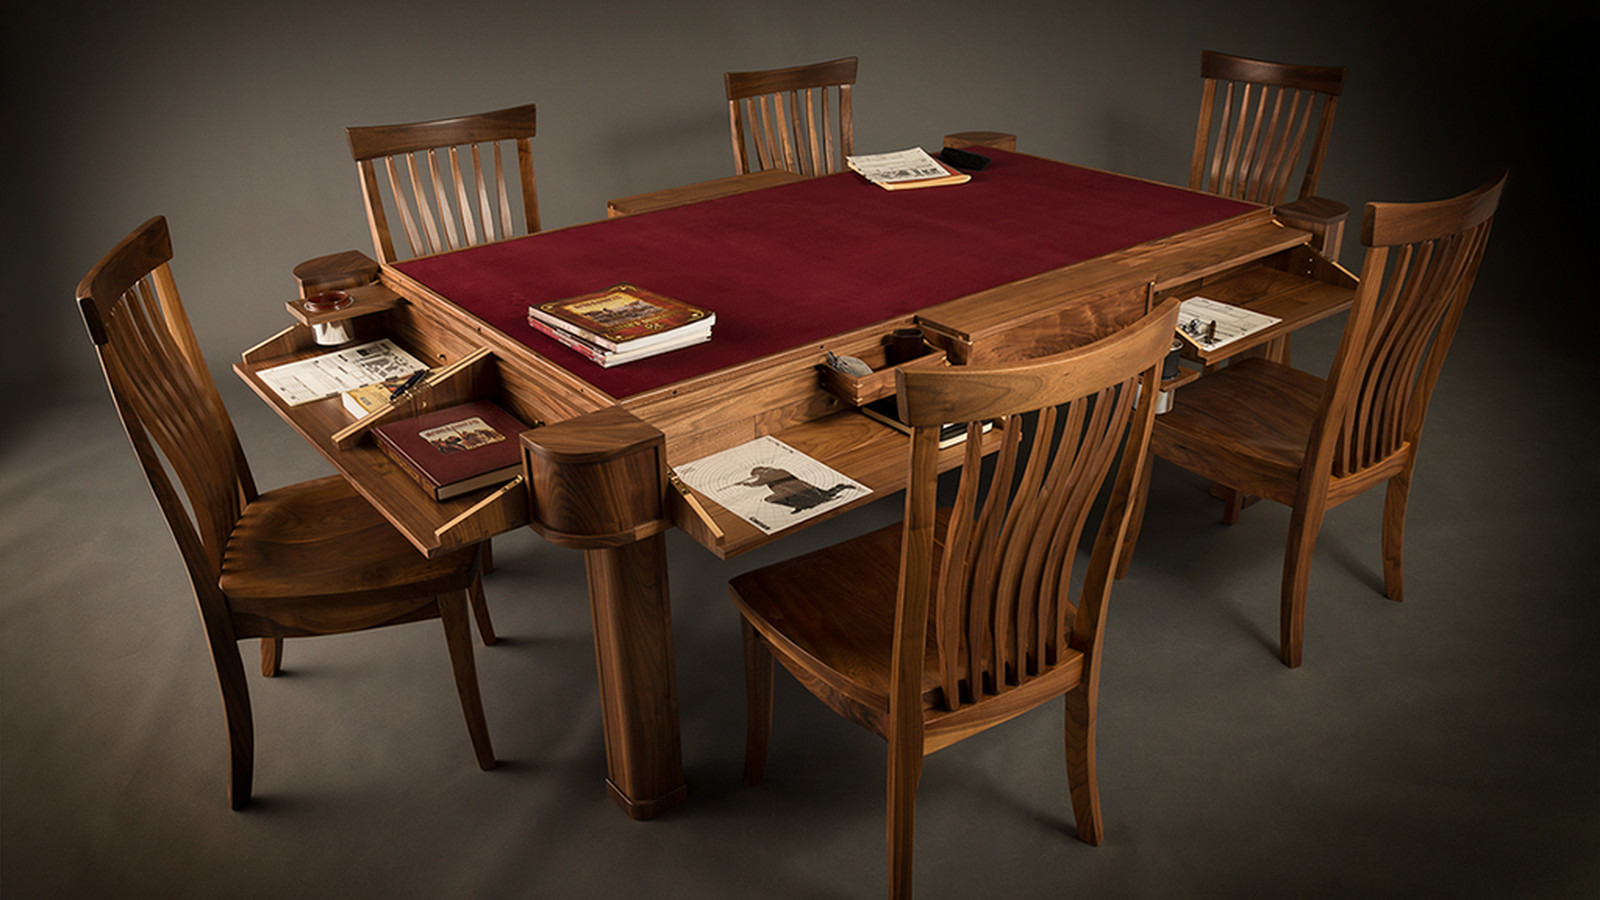 Court documents show gaming table maker Geek Chic was massively in debt